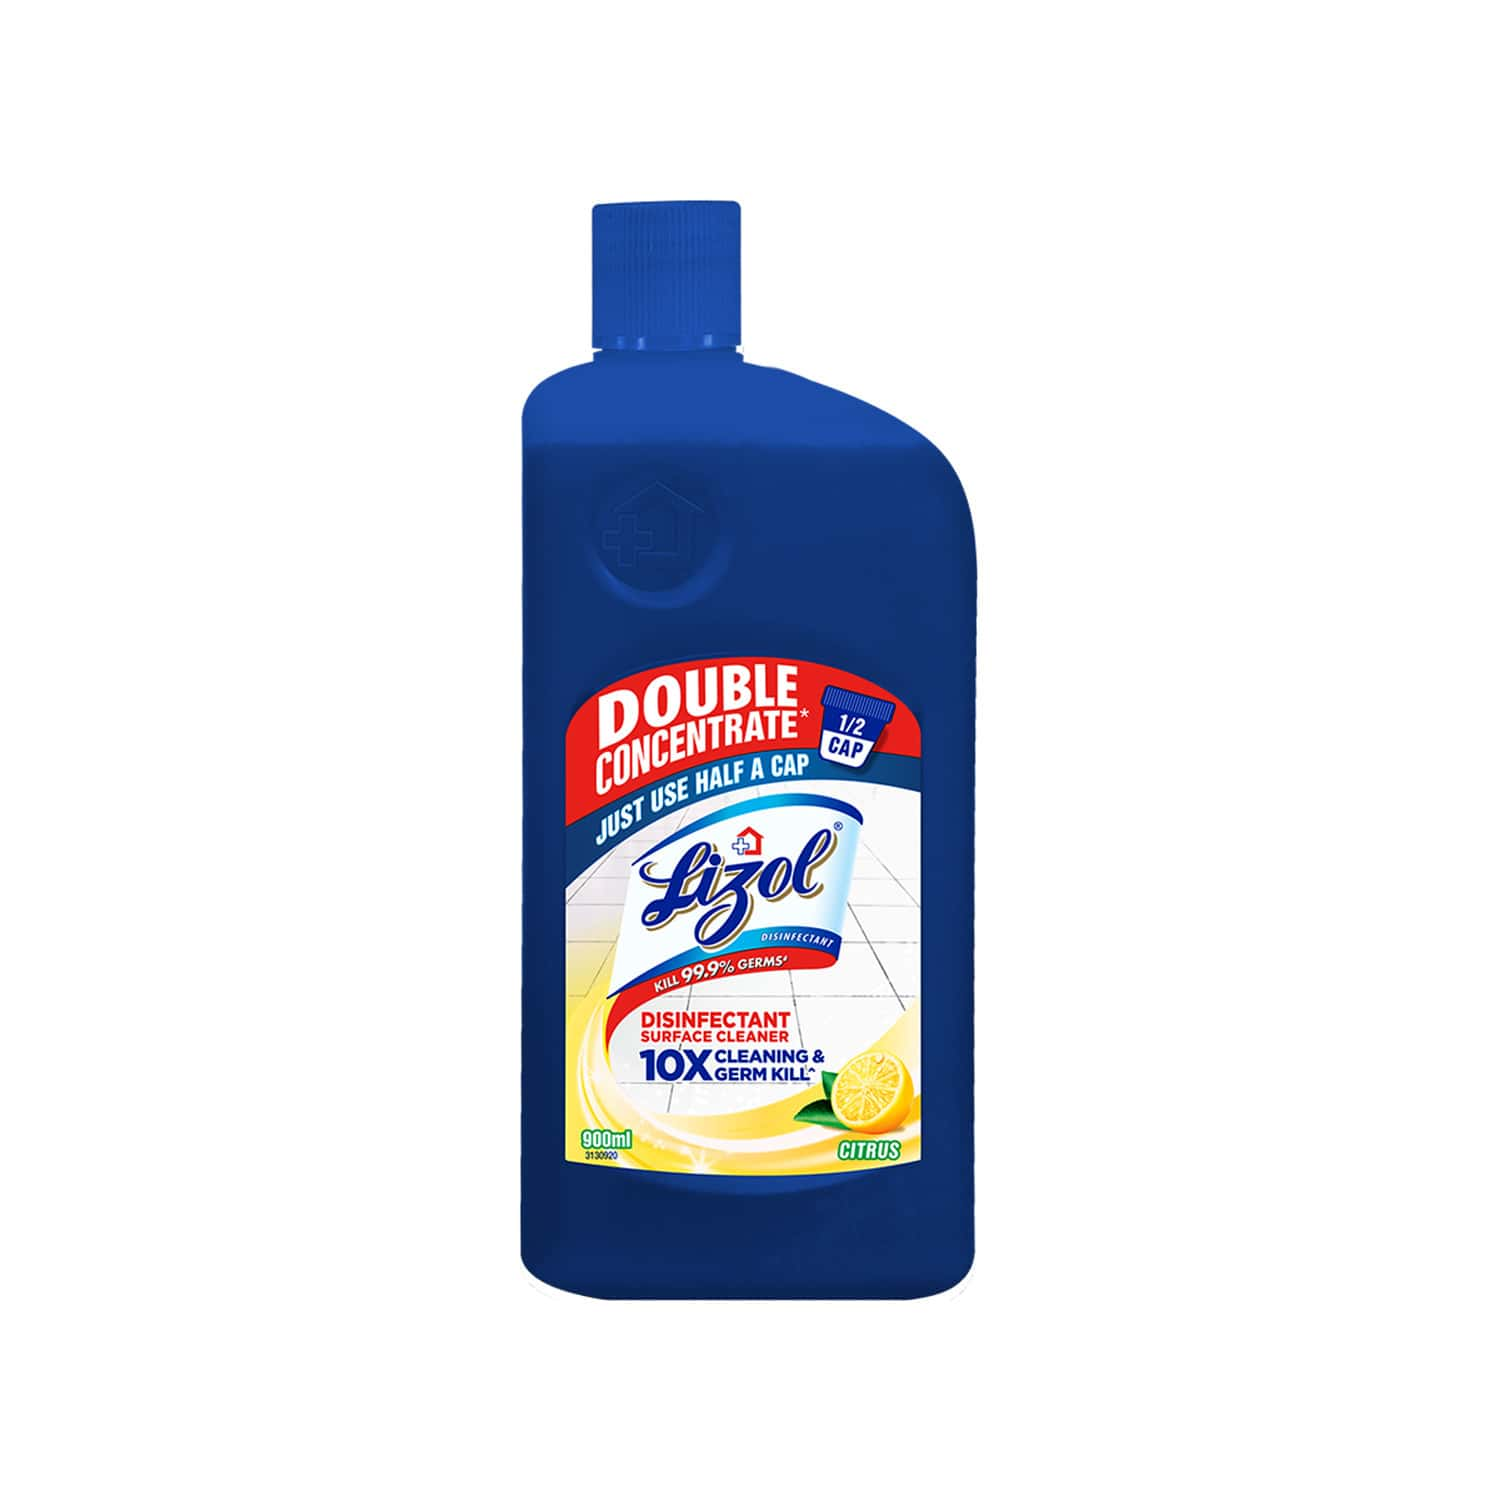 Lizol Double Concentrate Disinfectant Surface Cleaner ( Citrus ) - 900ml